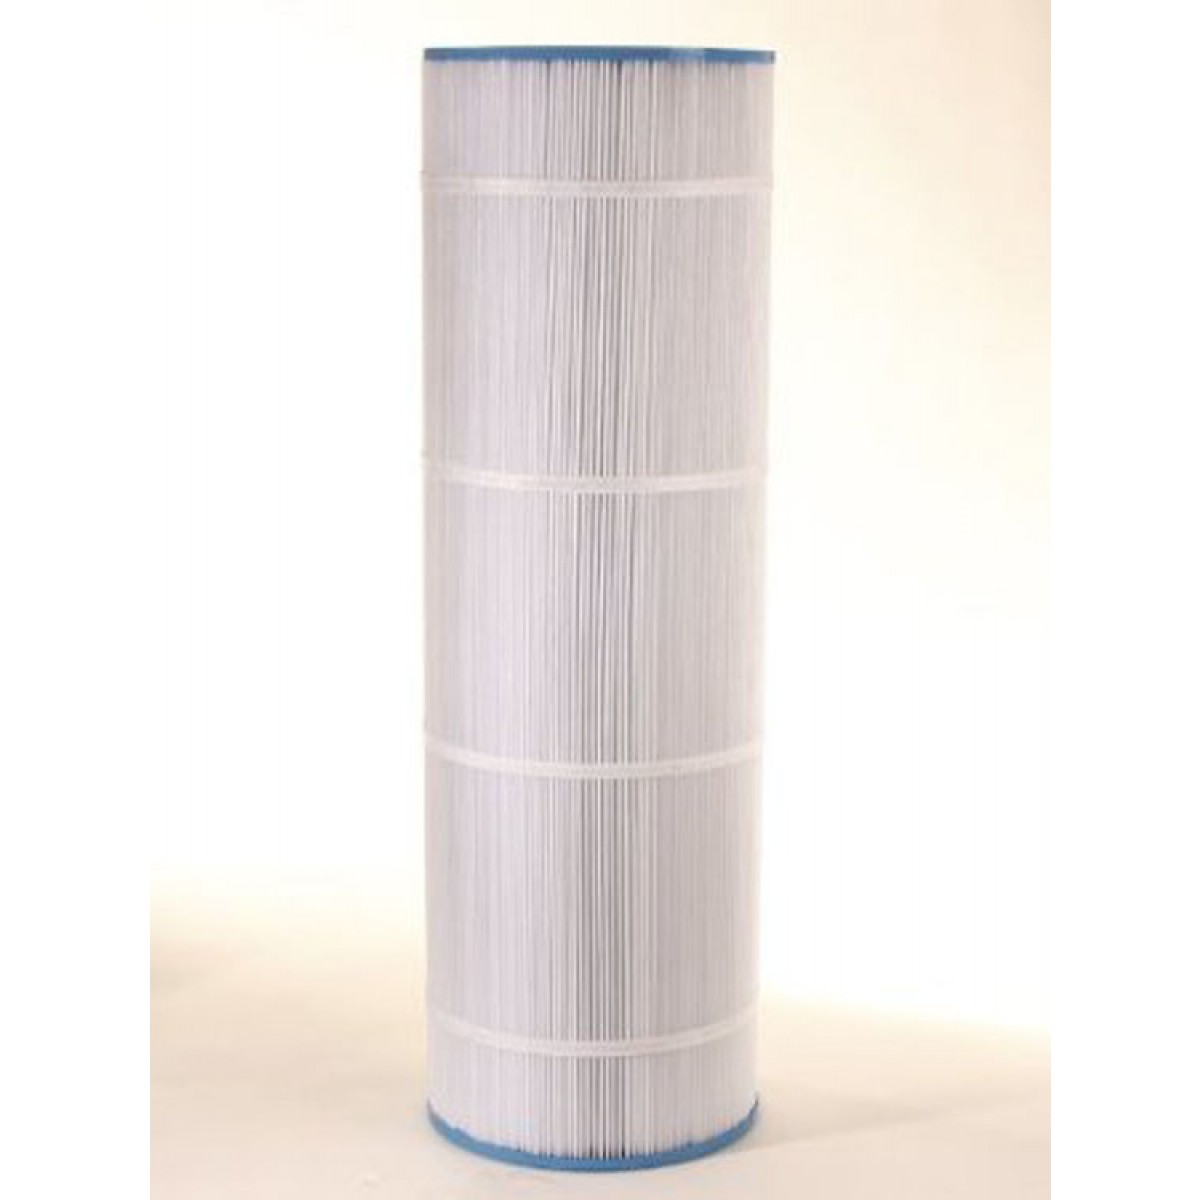 Discount Water Filters and Air Filters at Discount Filter Store.com #486483